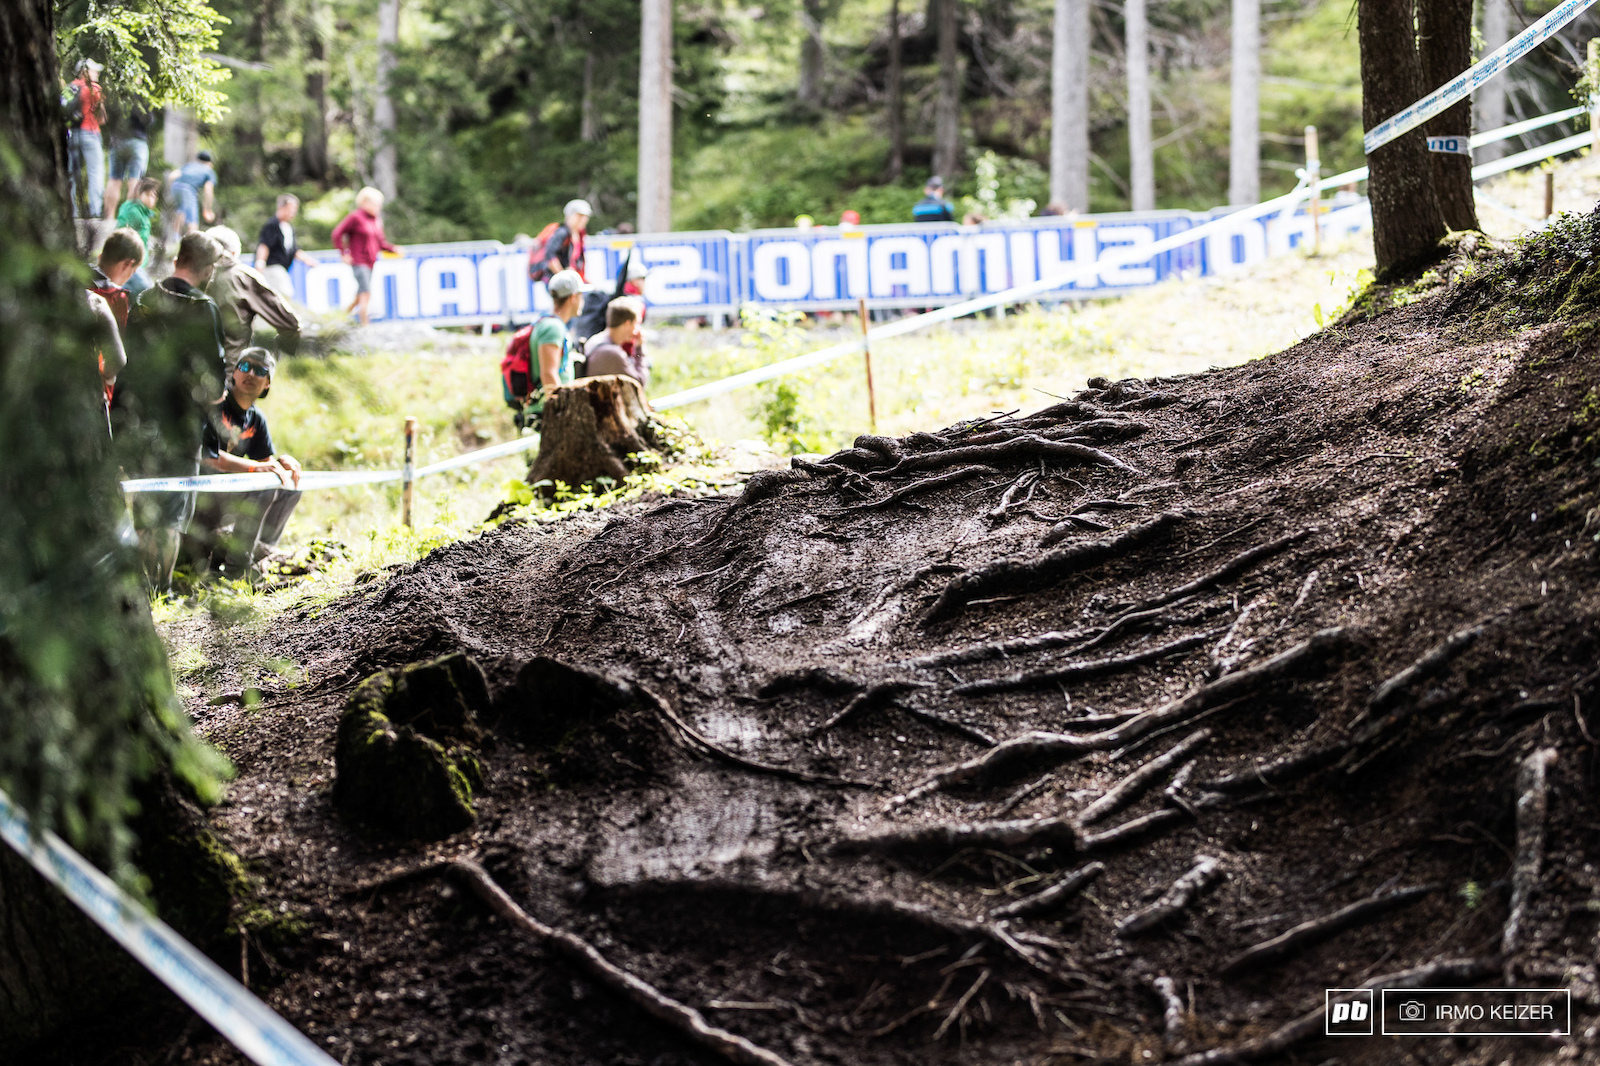 A night of rainfall had turned a dry and dusty track into a slick slippery challenge.